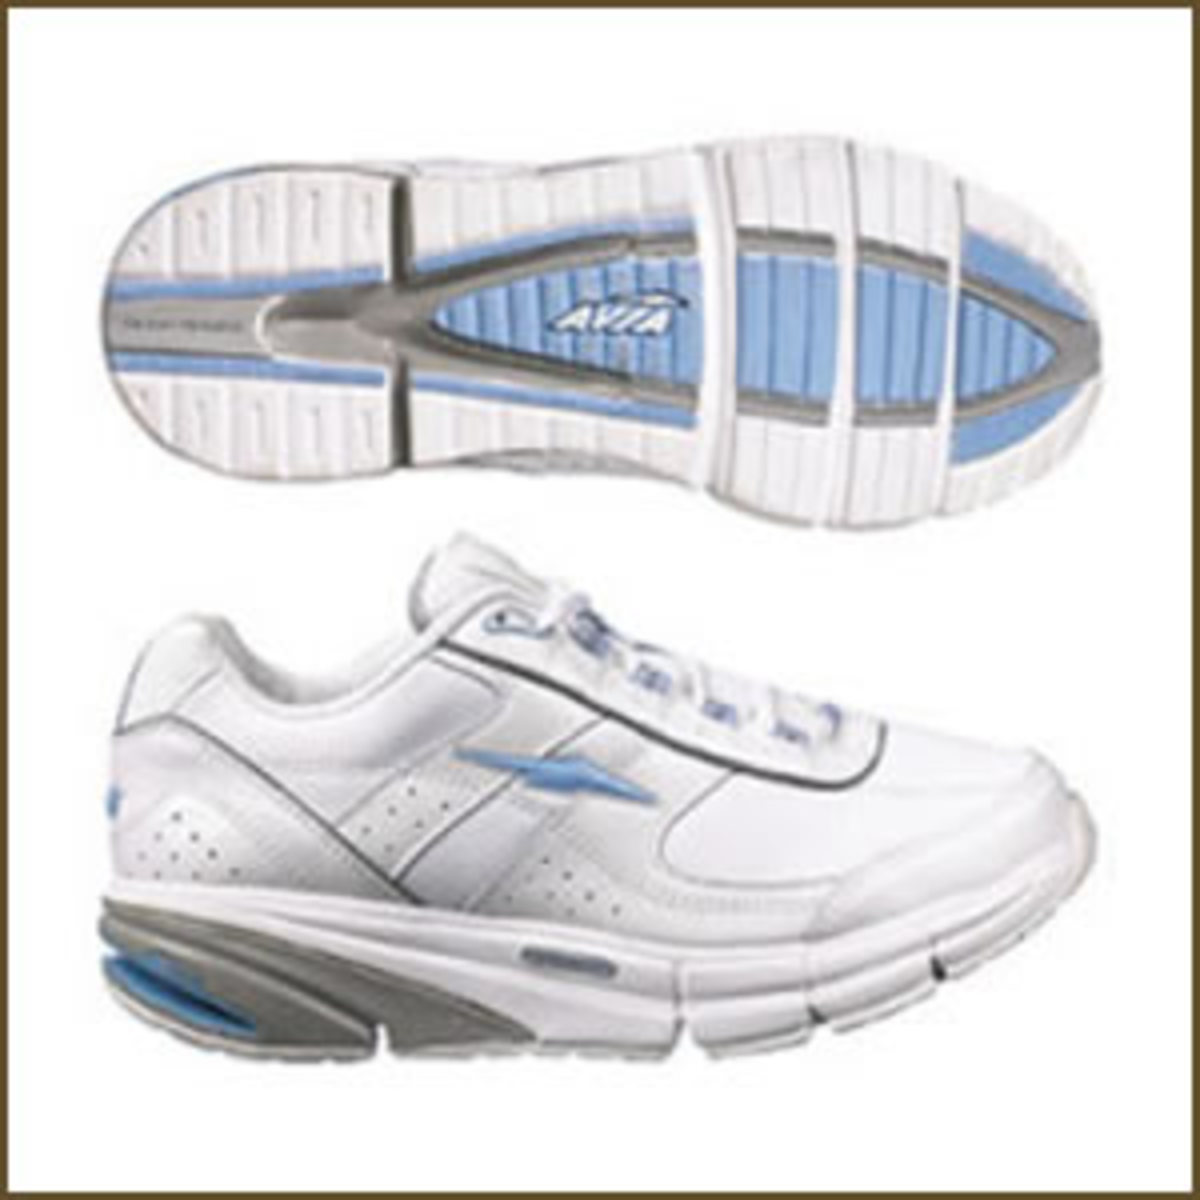 Avia AVI-MOTION toning shoes